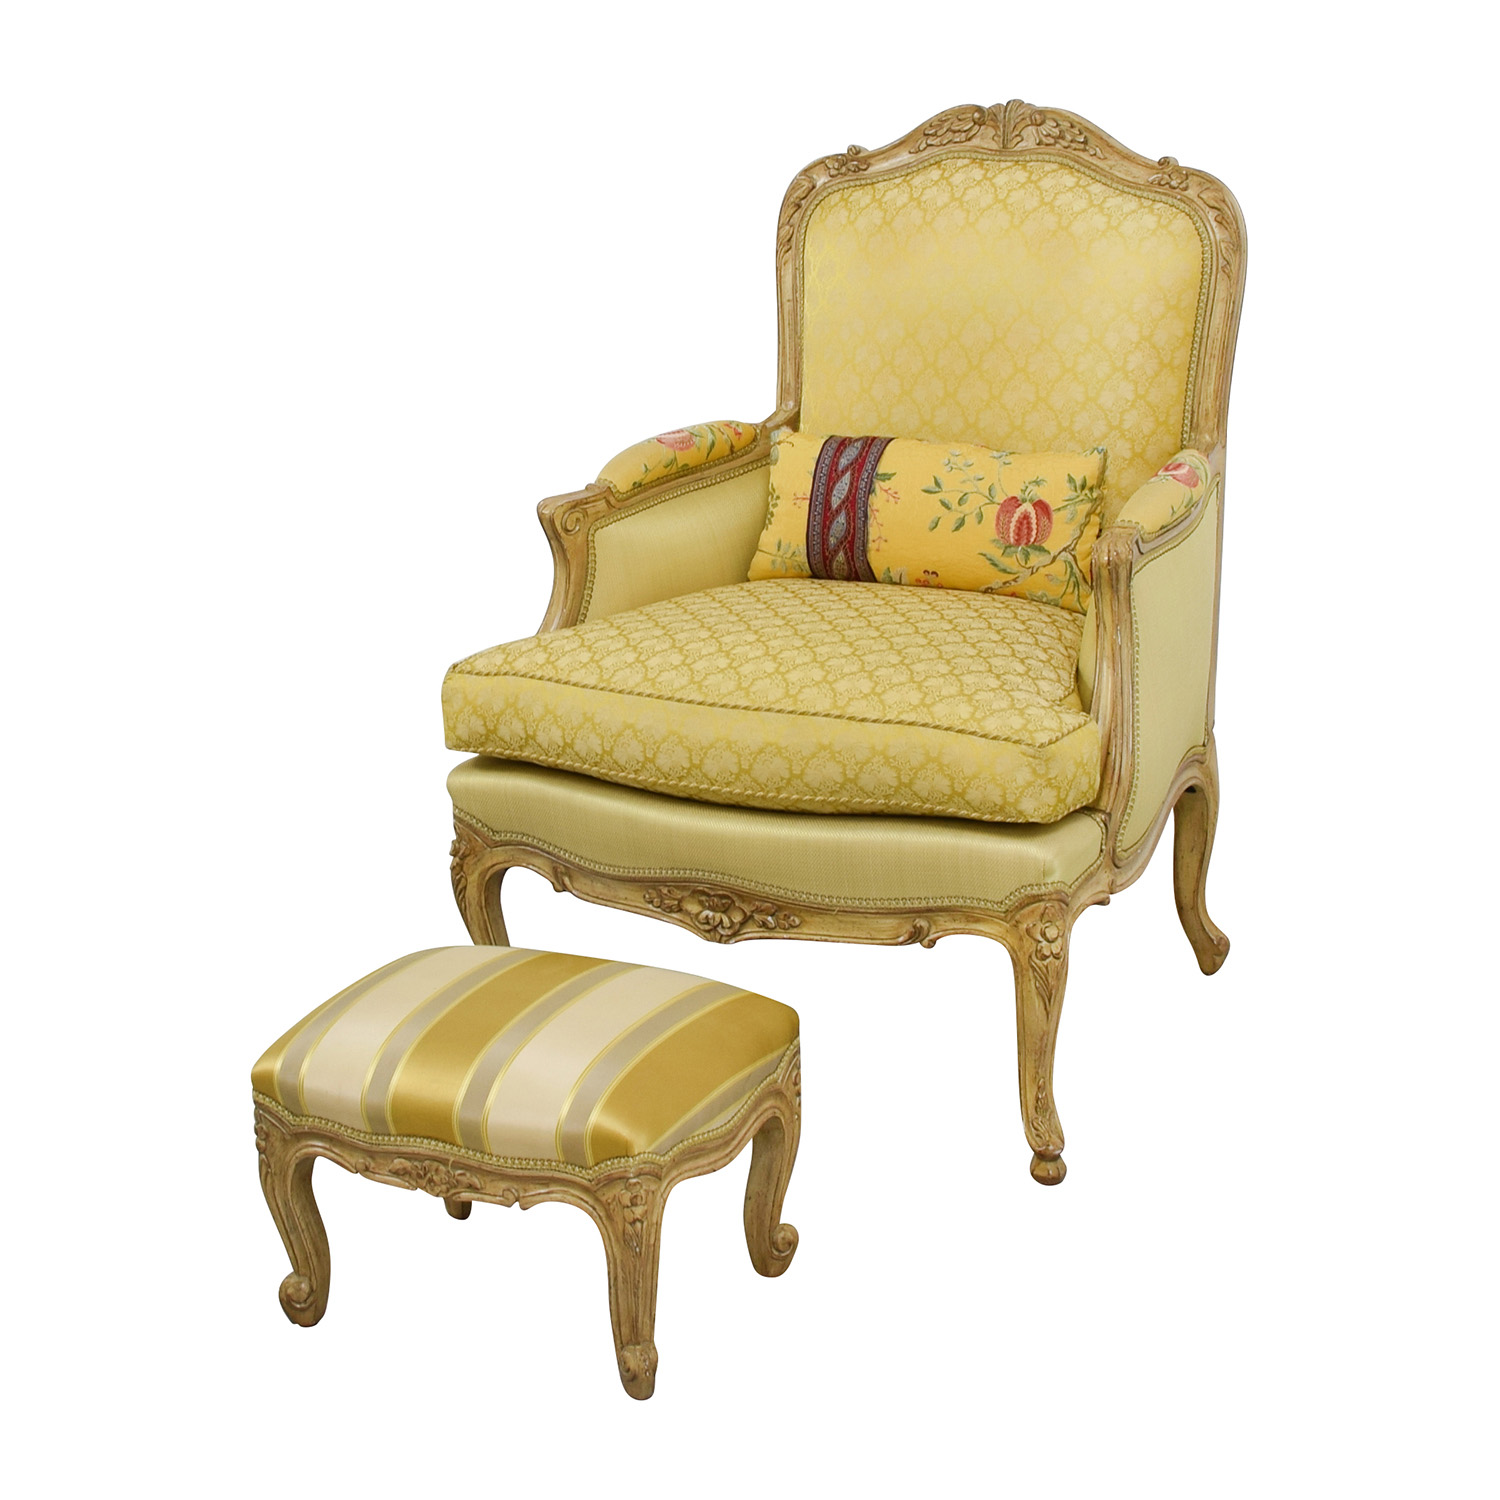 Unique Upholstered Chairs: Custom Scalamadre Upholstered Louis Style Chair